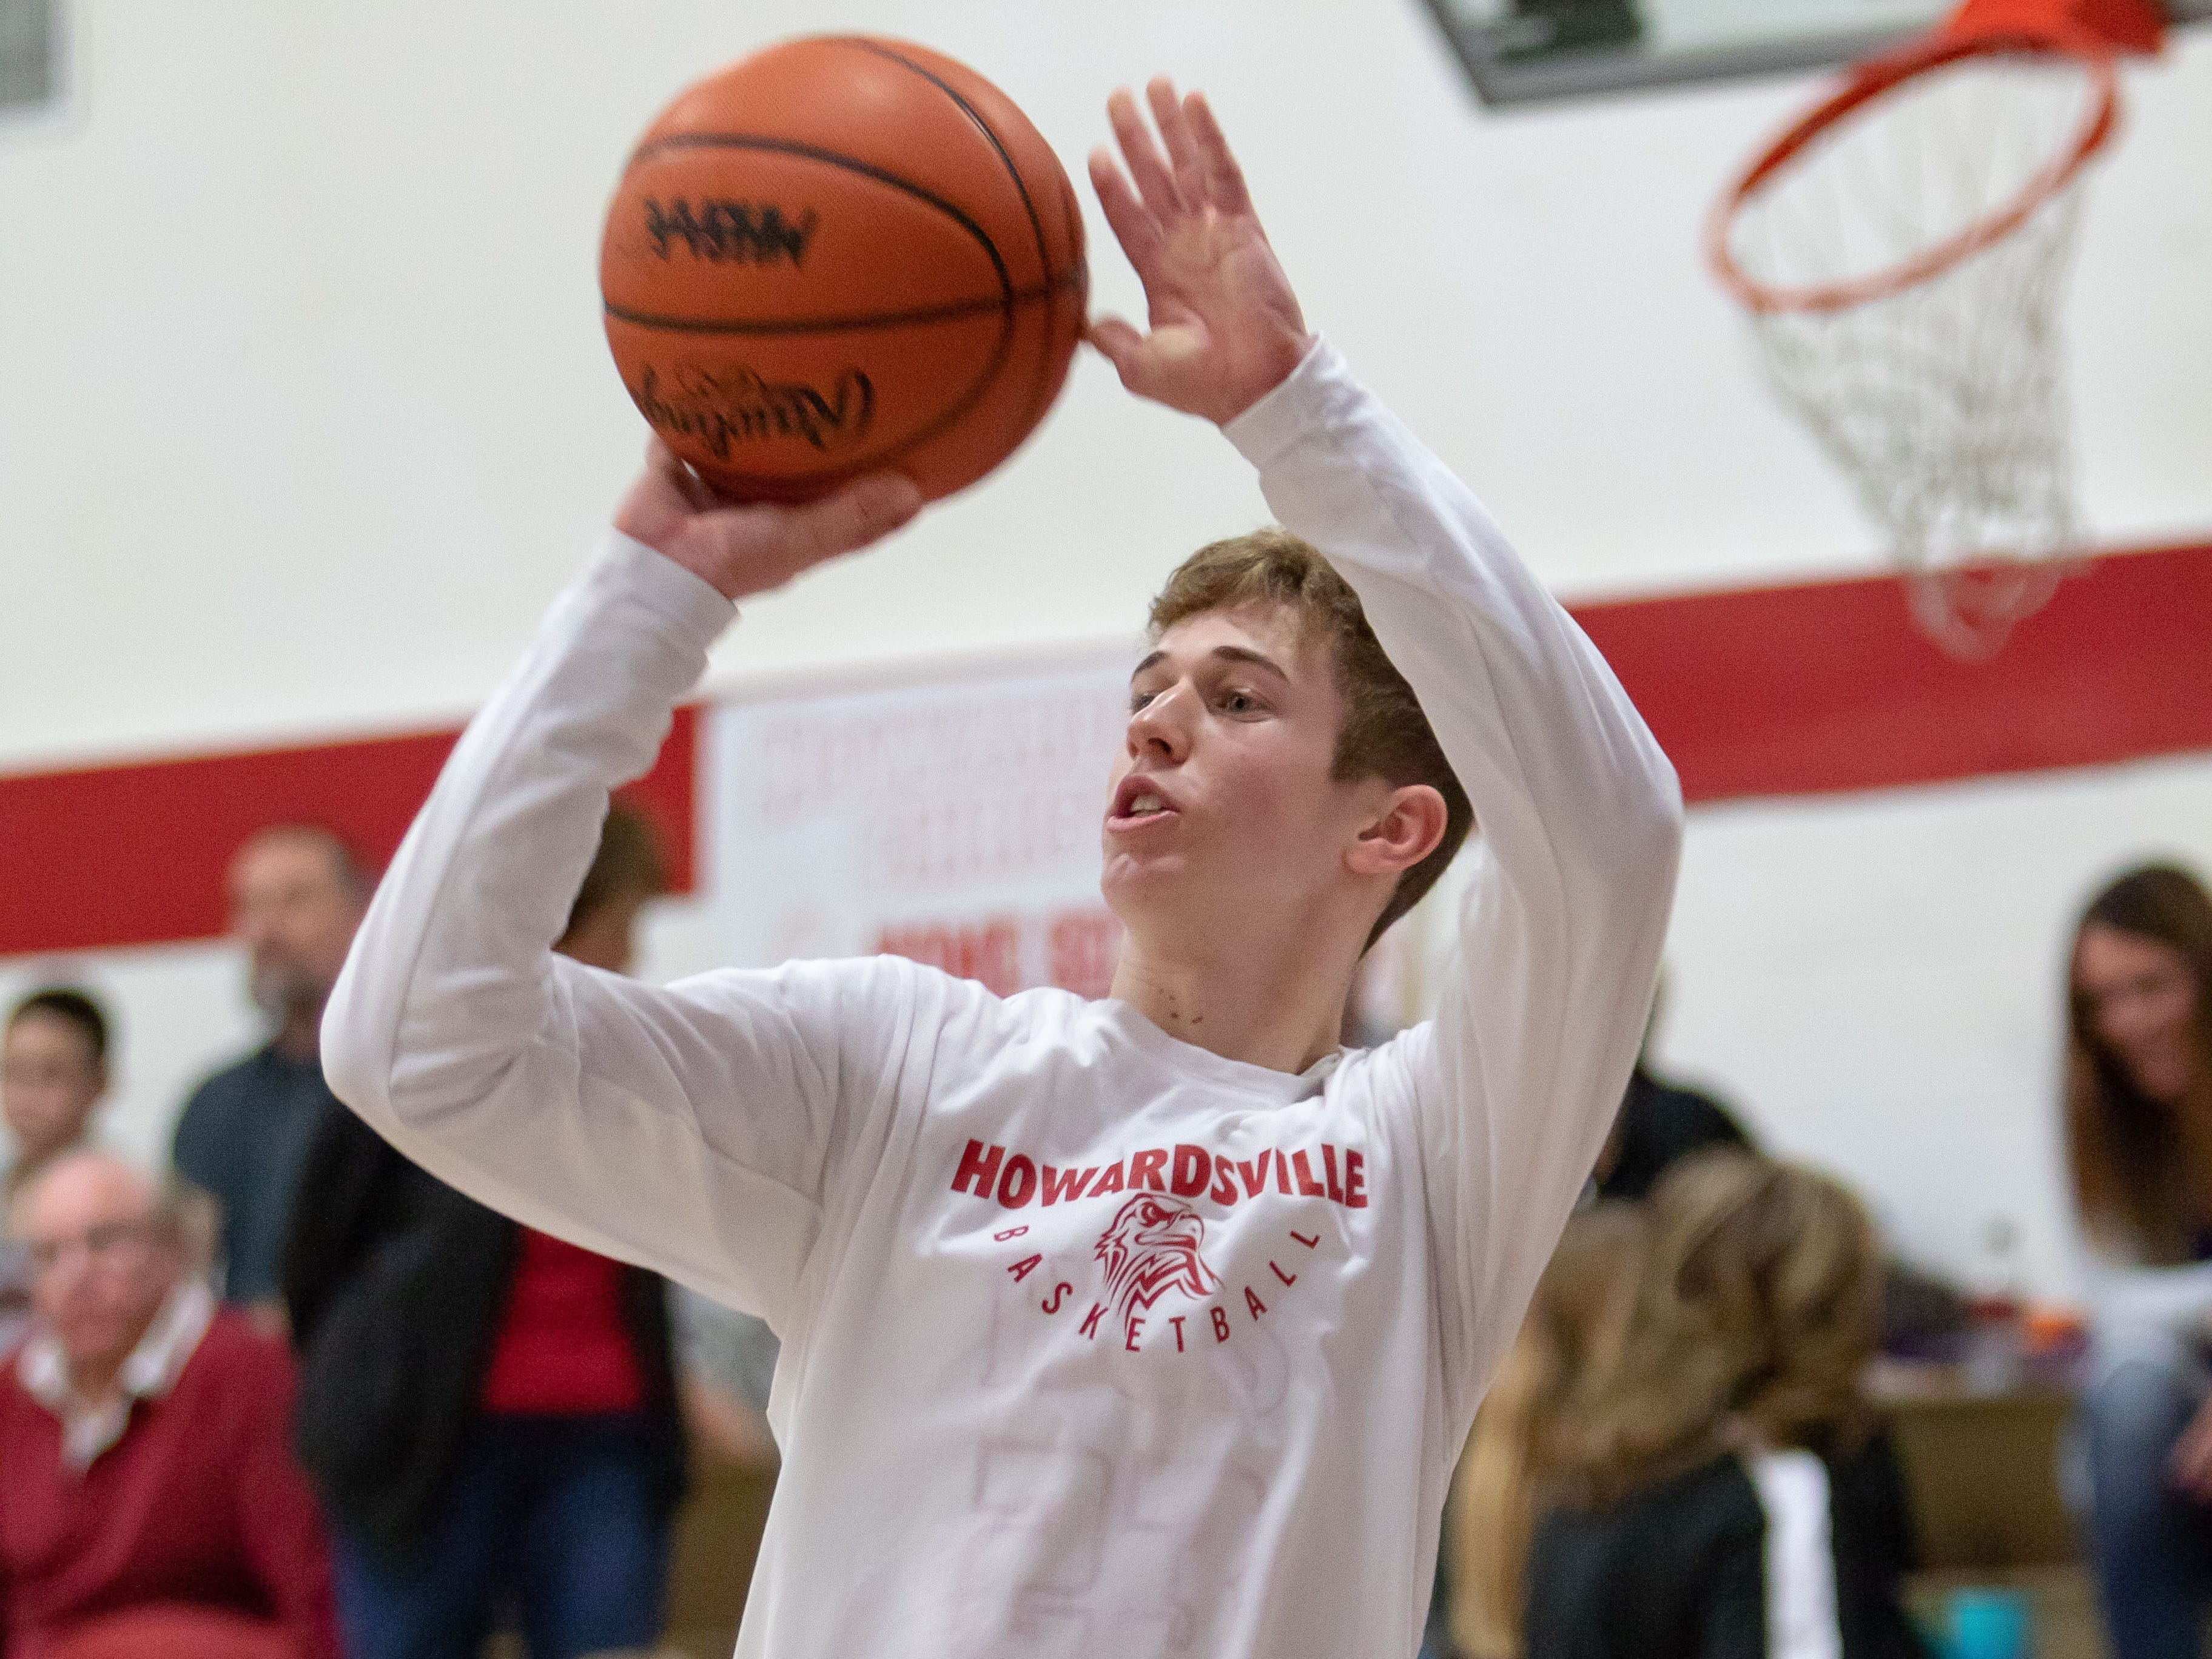 Dylan Jergens of Marcellus Howardsville Christian is third on the all-time career scoring list for the state of Michigan, with 2,628 points entering postseason play.